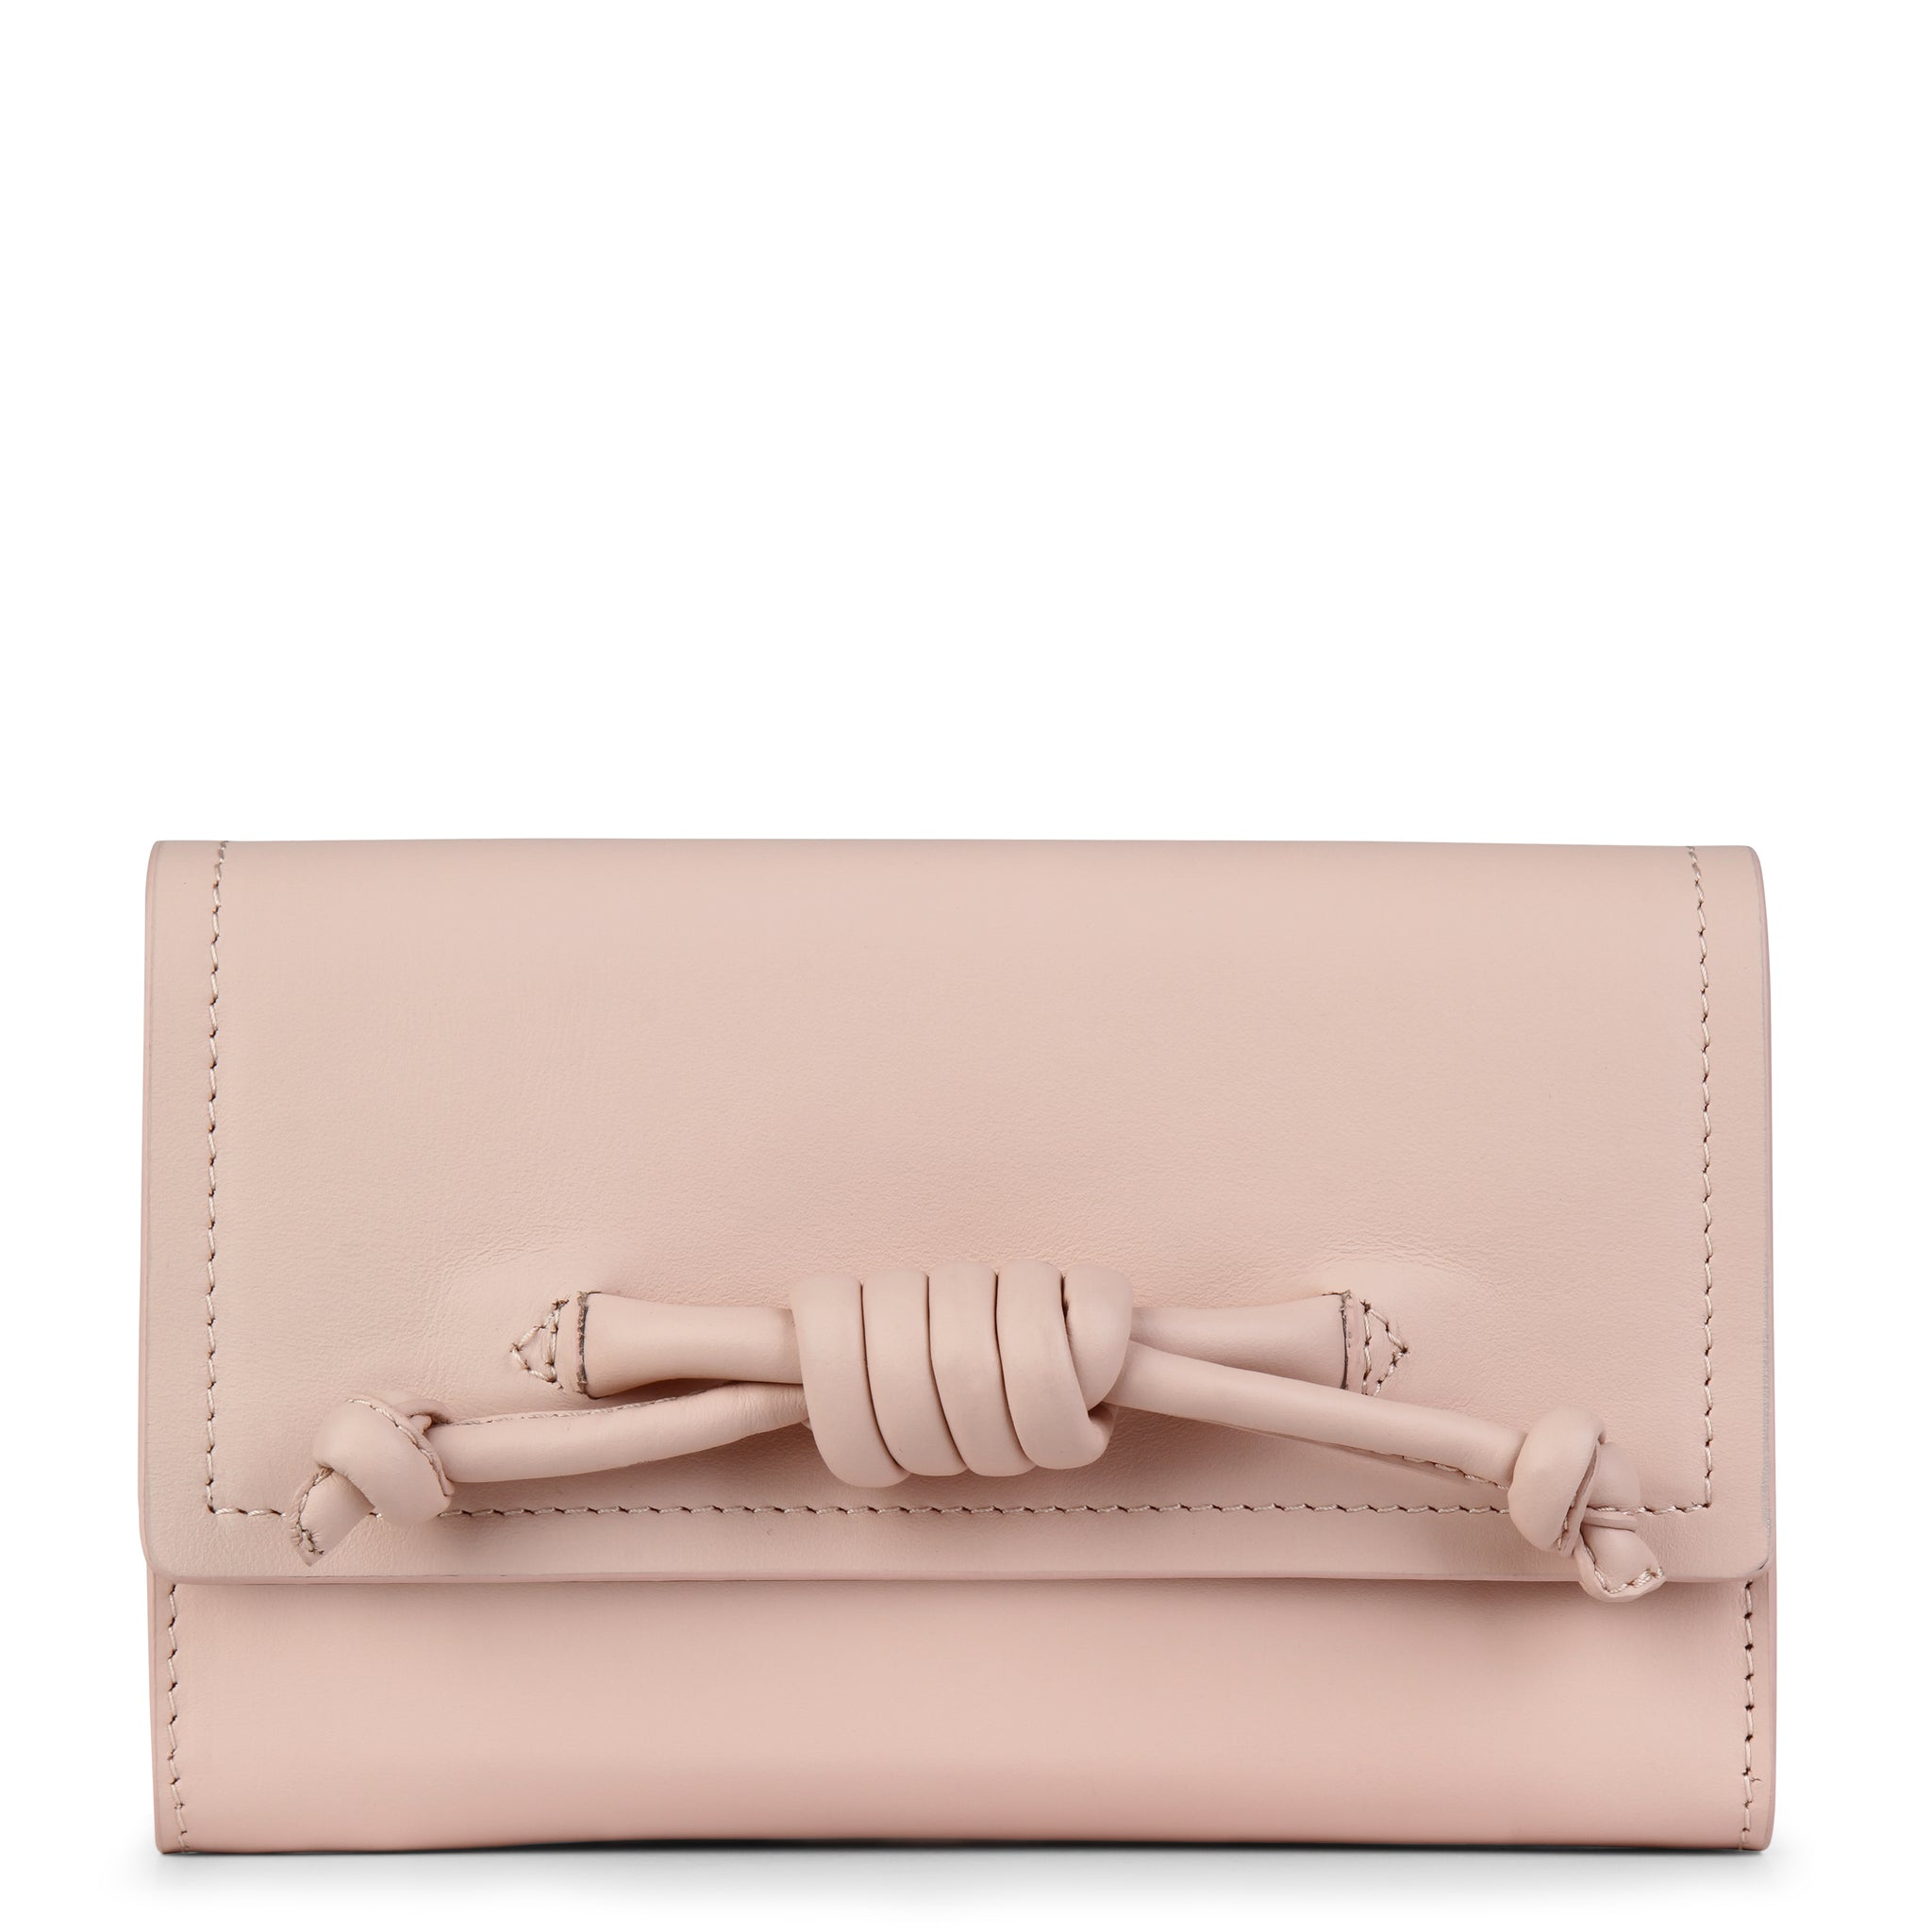 A convertible leather pink phone wallet with a knot detail in front that could be used as a crossbody bag, front image.